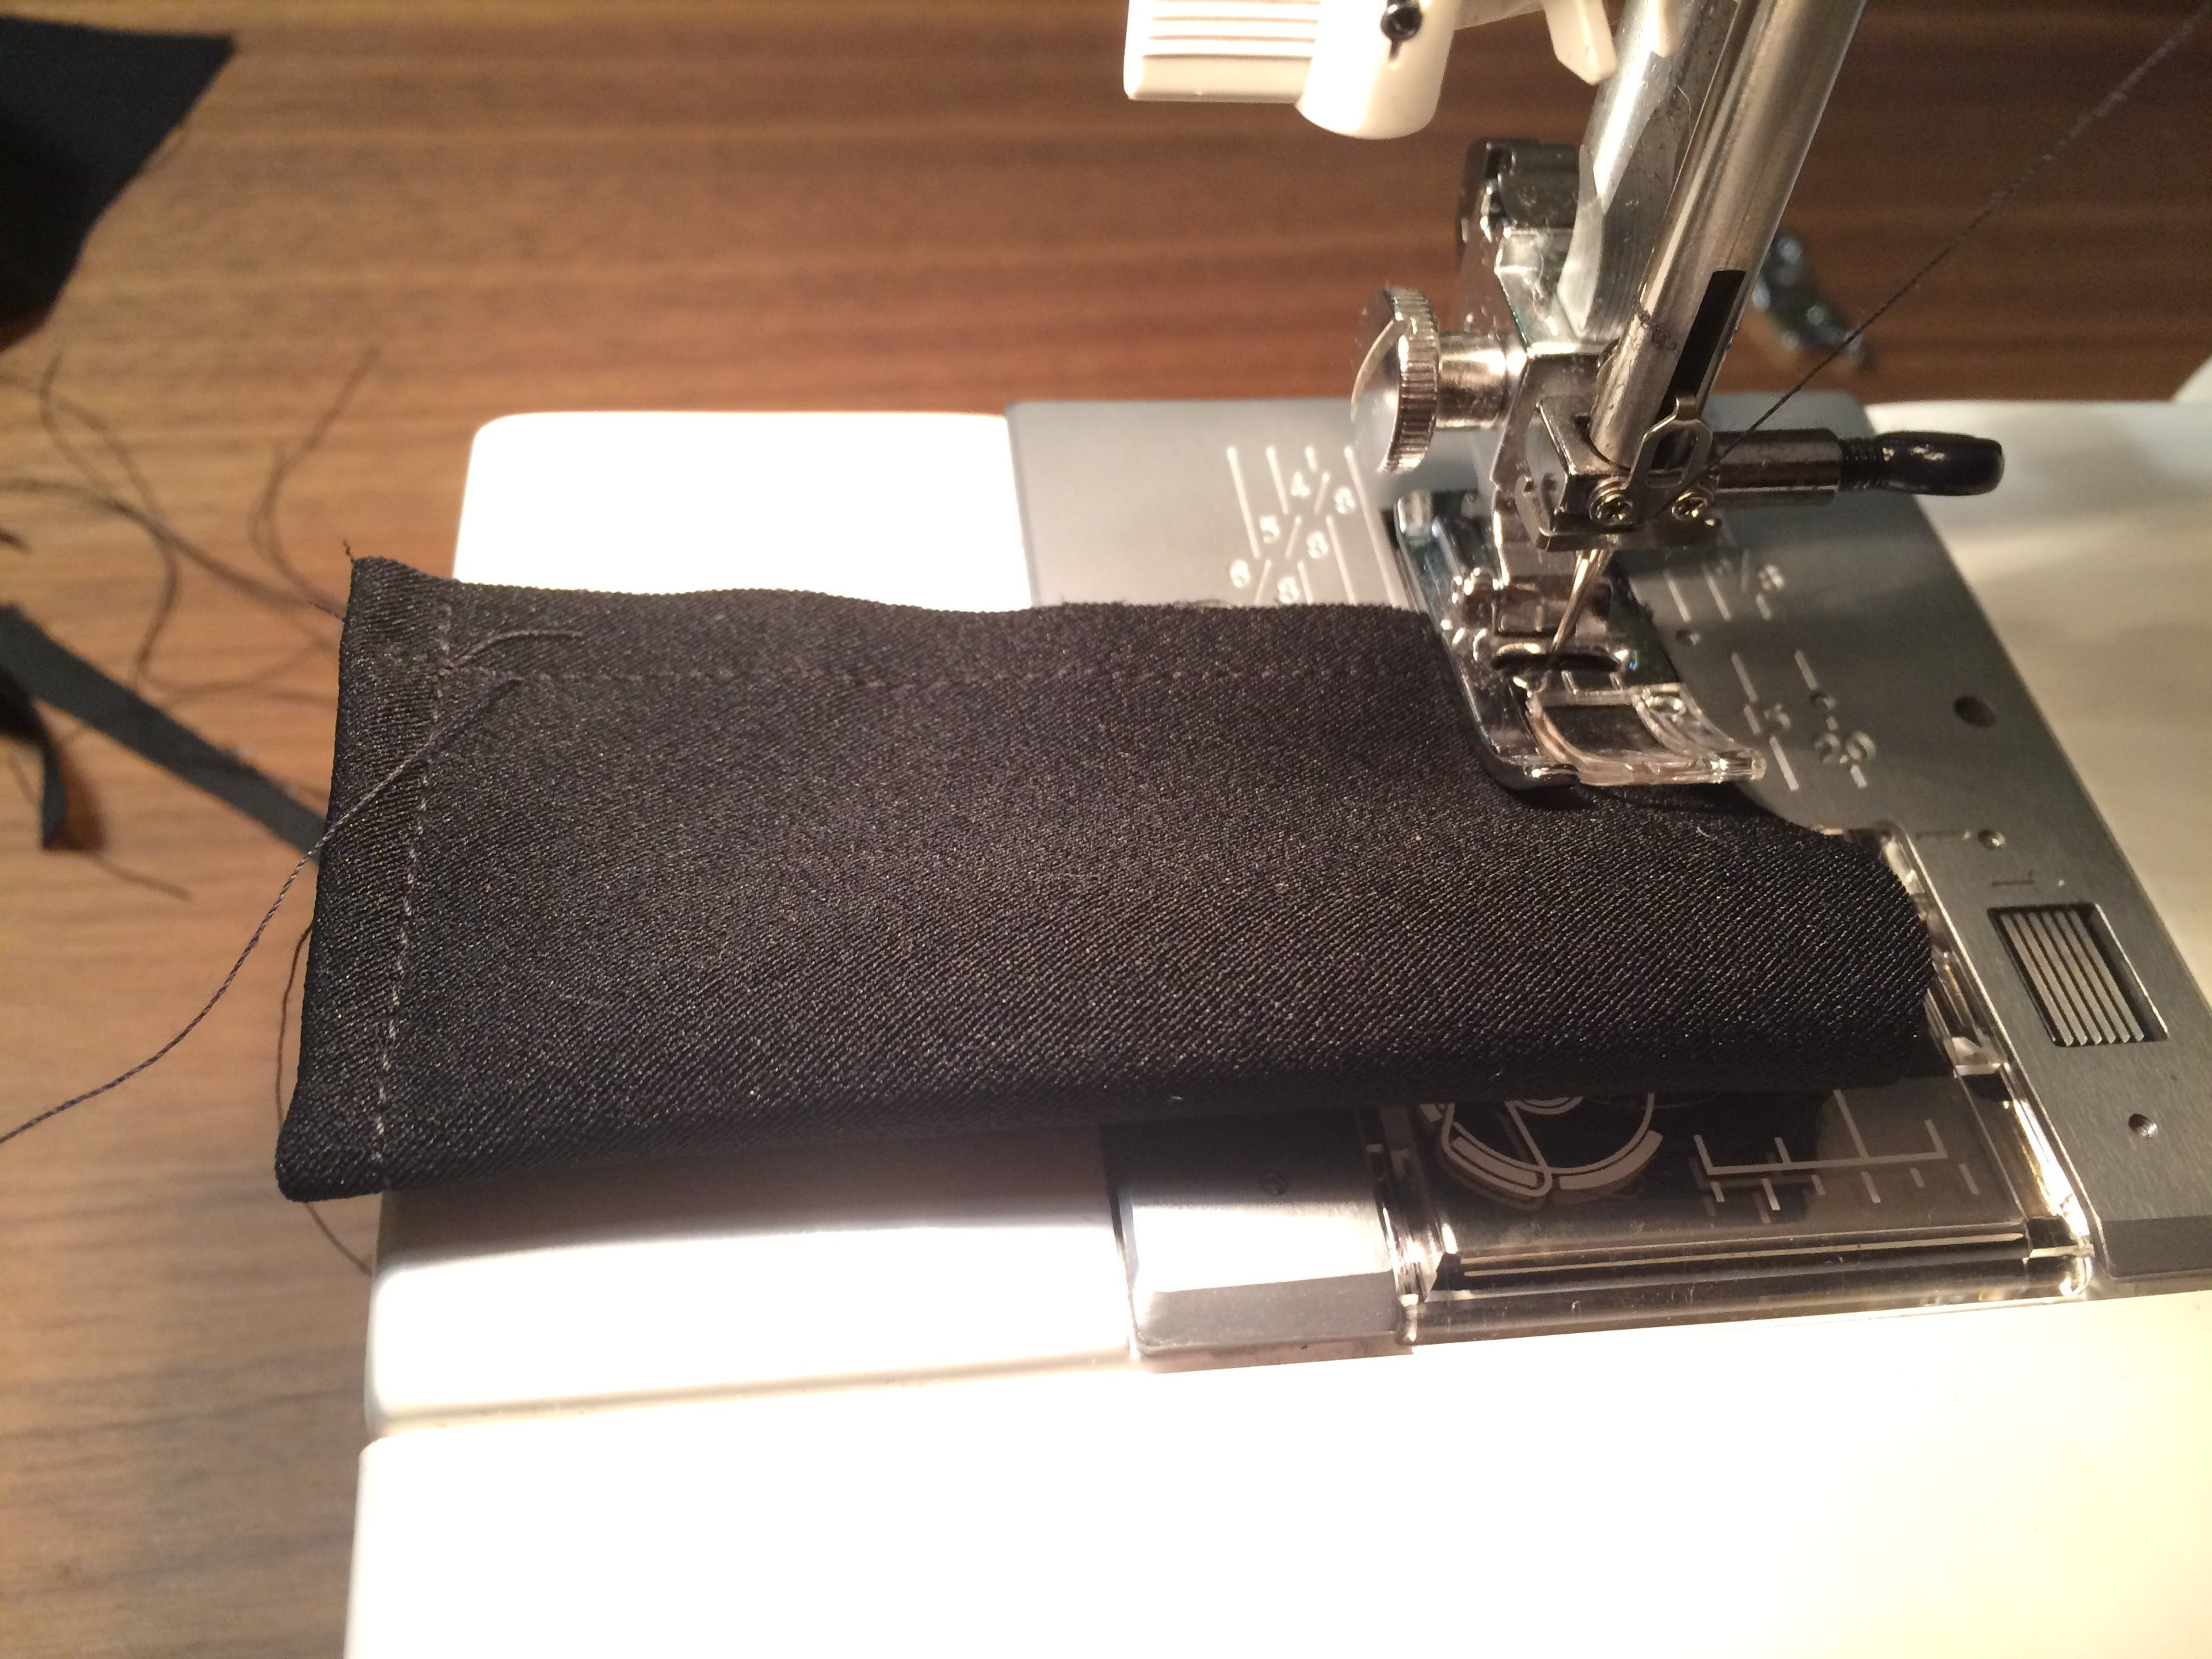 Sewing pouches